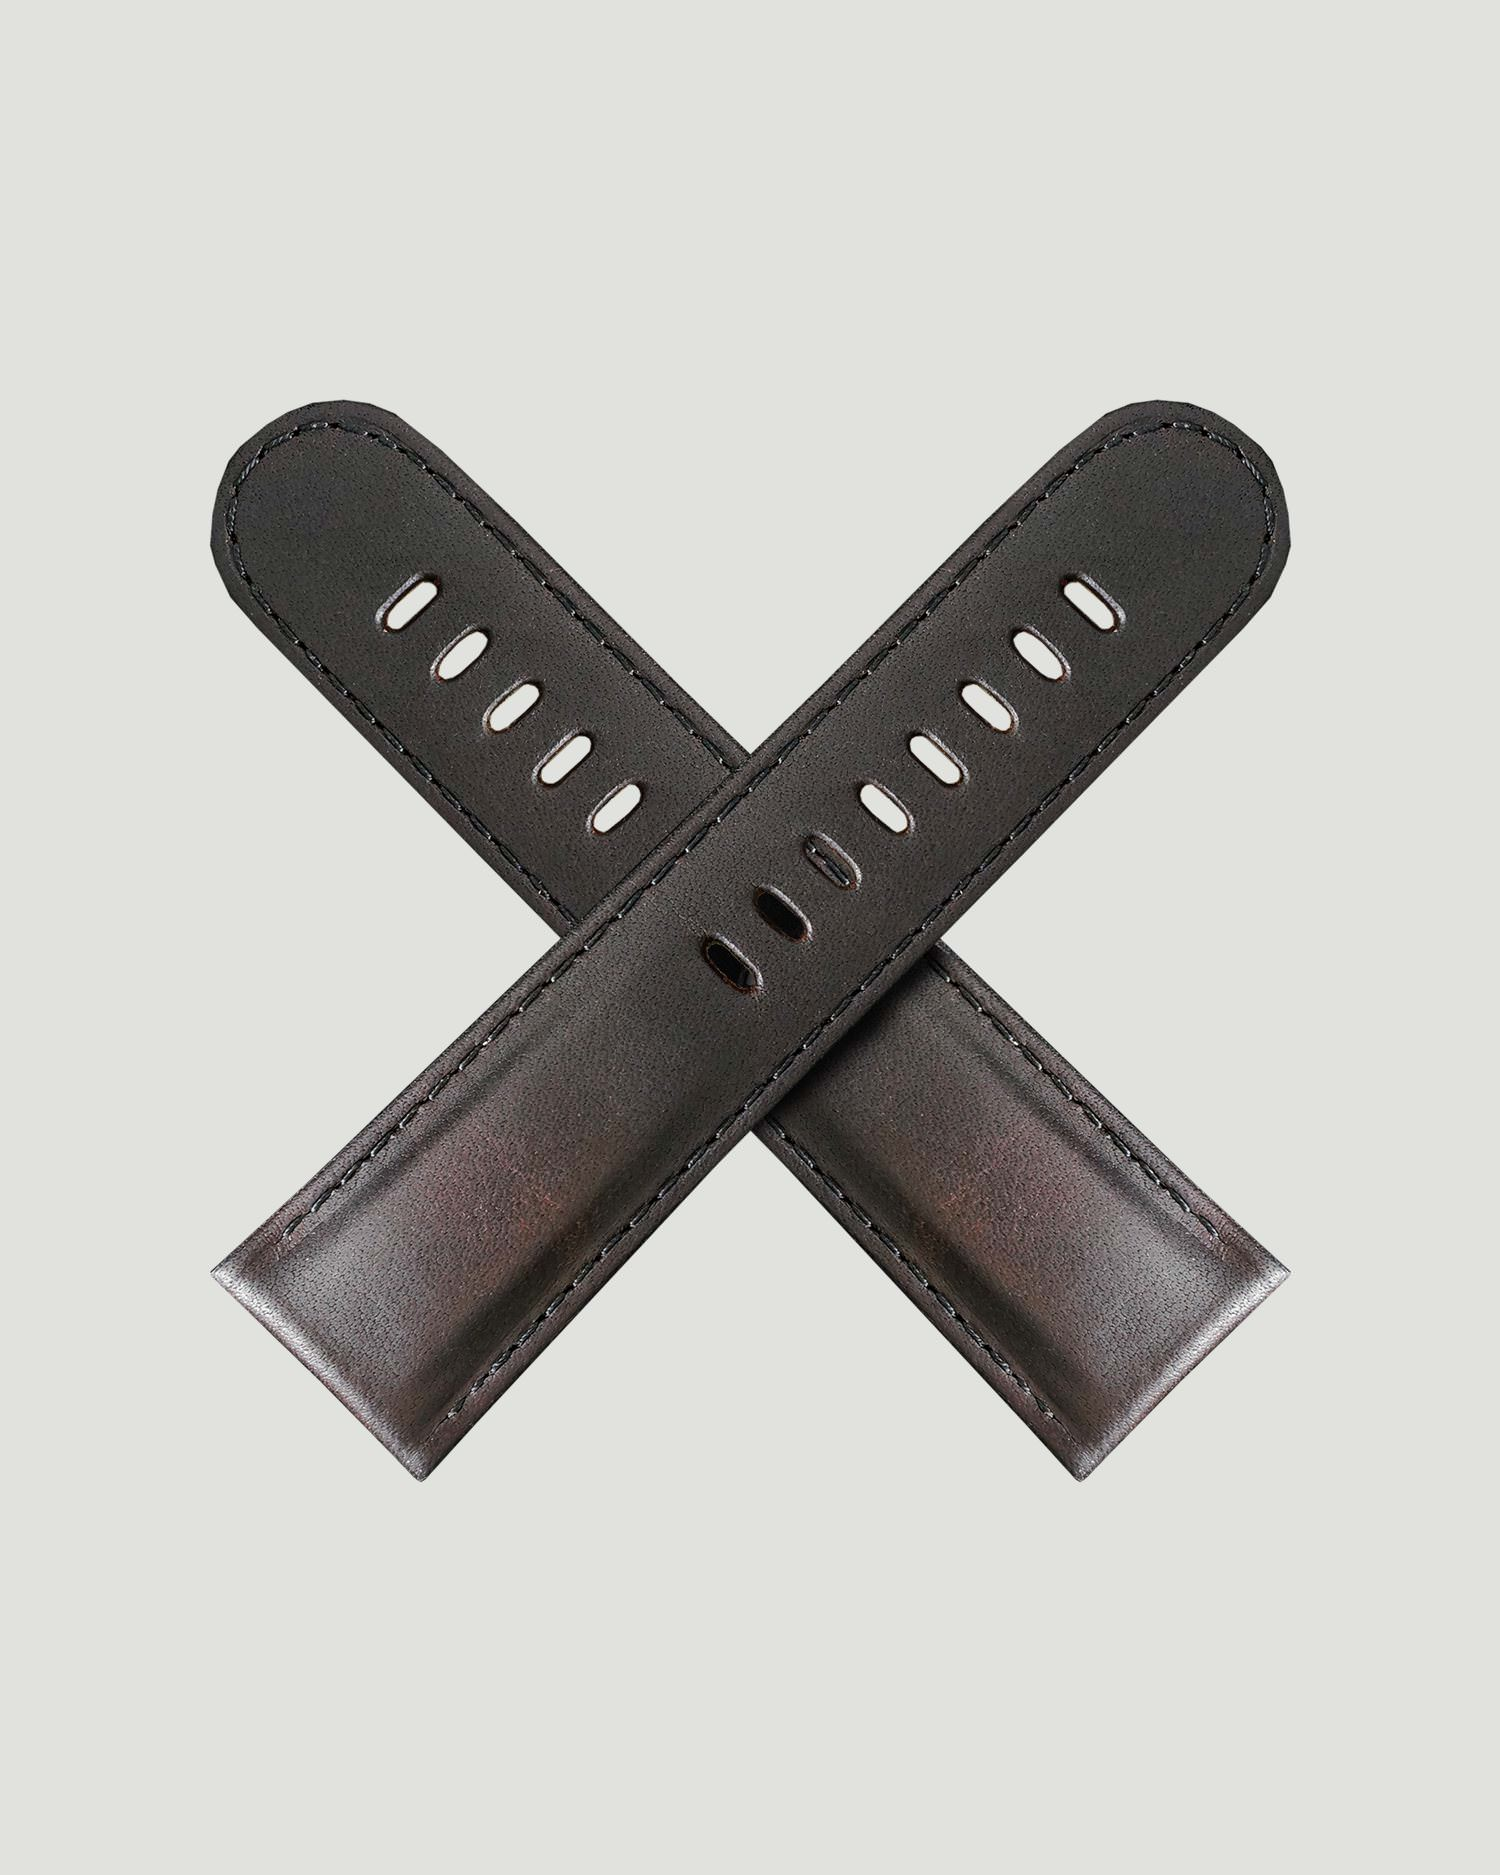 Clayton brown leather watch strap